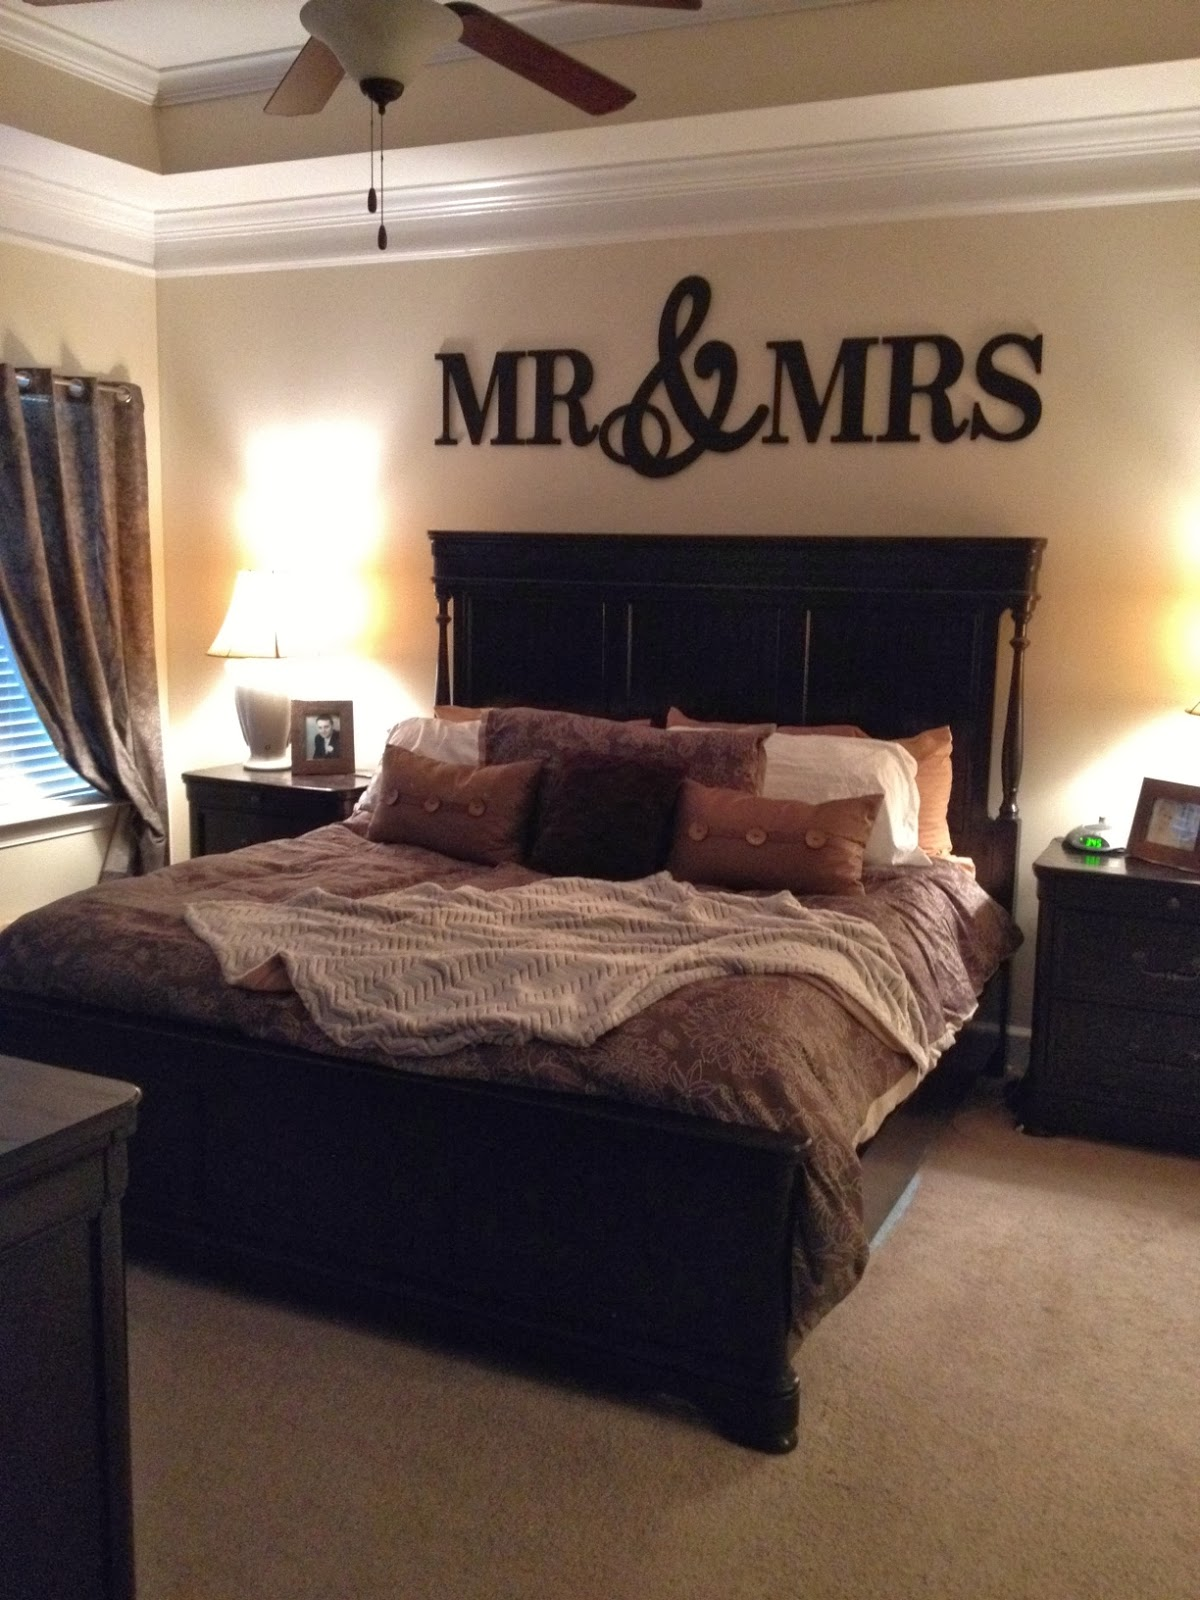 Simply the simmons mr mrs Master bedroom wall art ideas